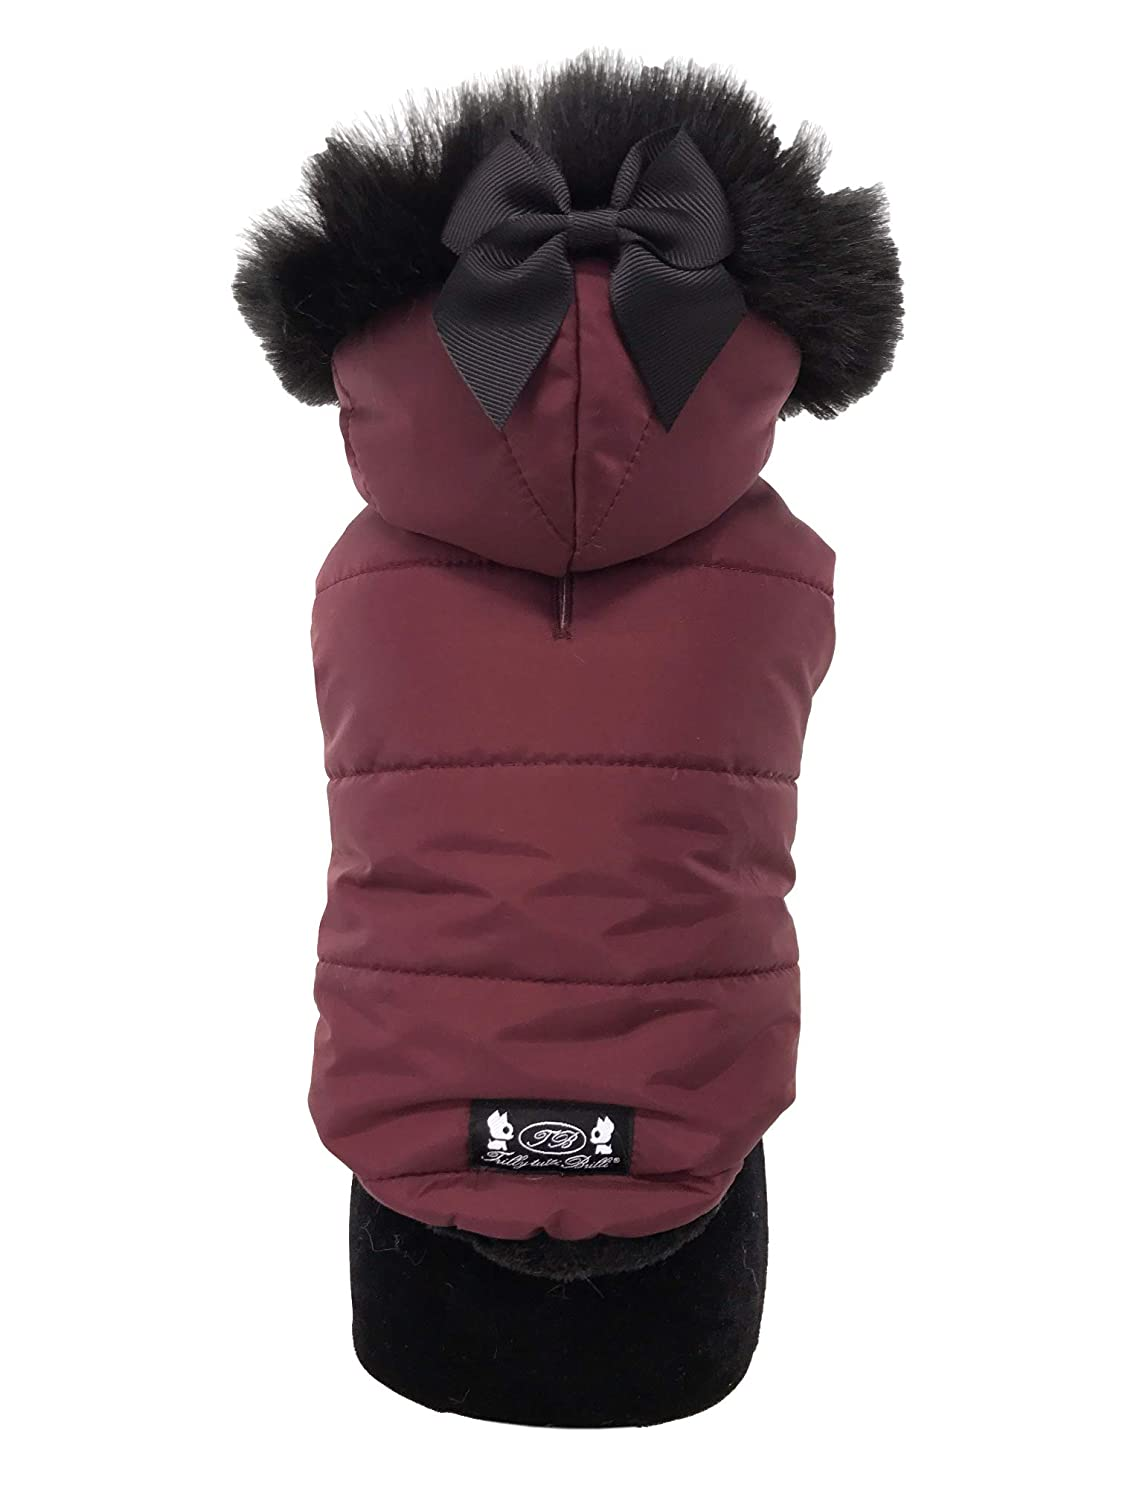 Maroon S M maroon S M Trilly tutti Brilli Emma, dog's down jacket with detachable hood, maroon, S M